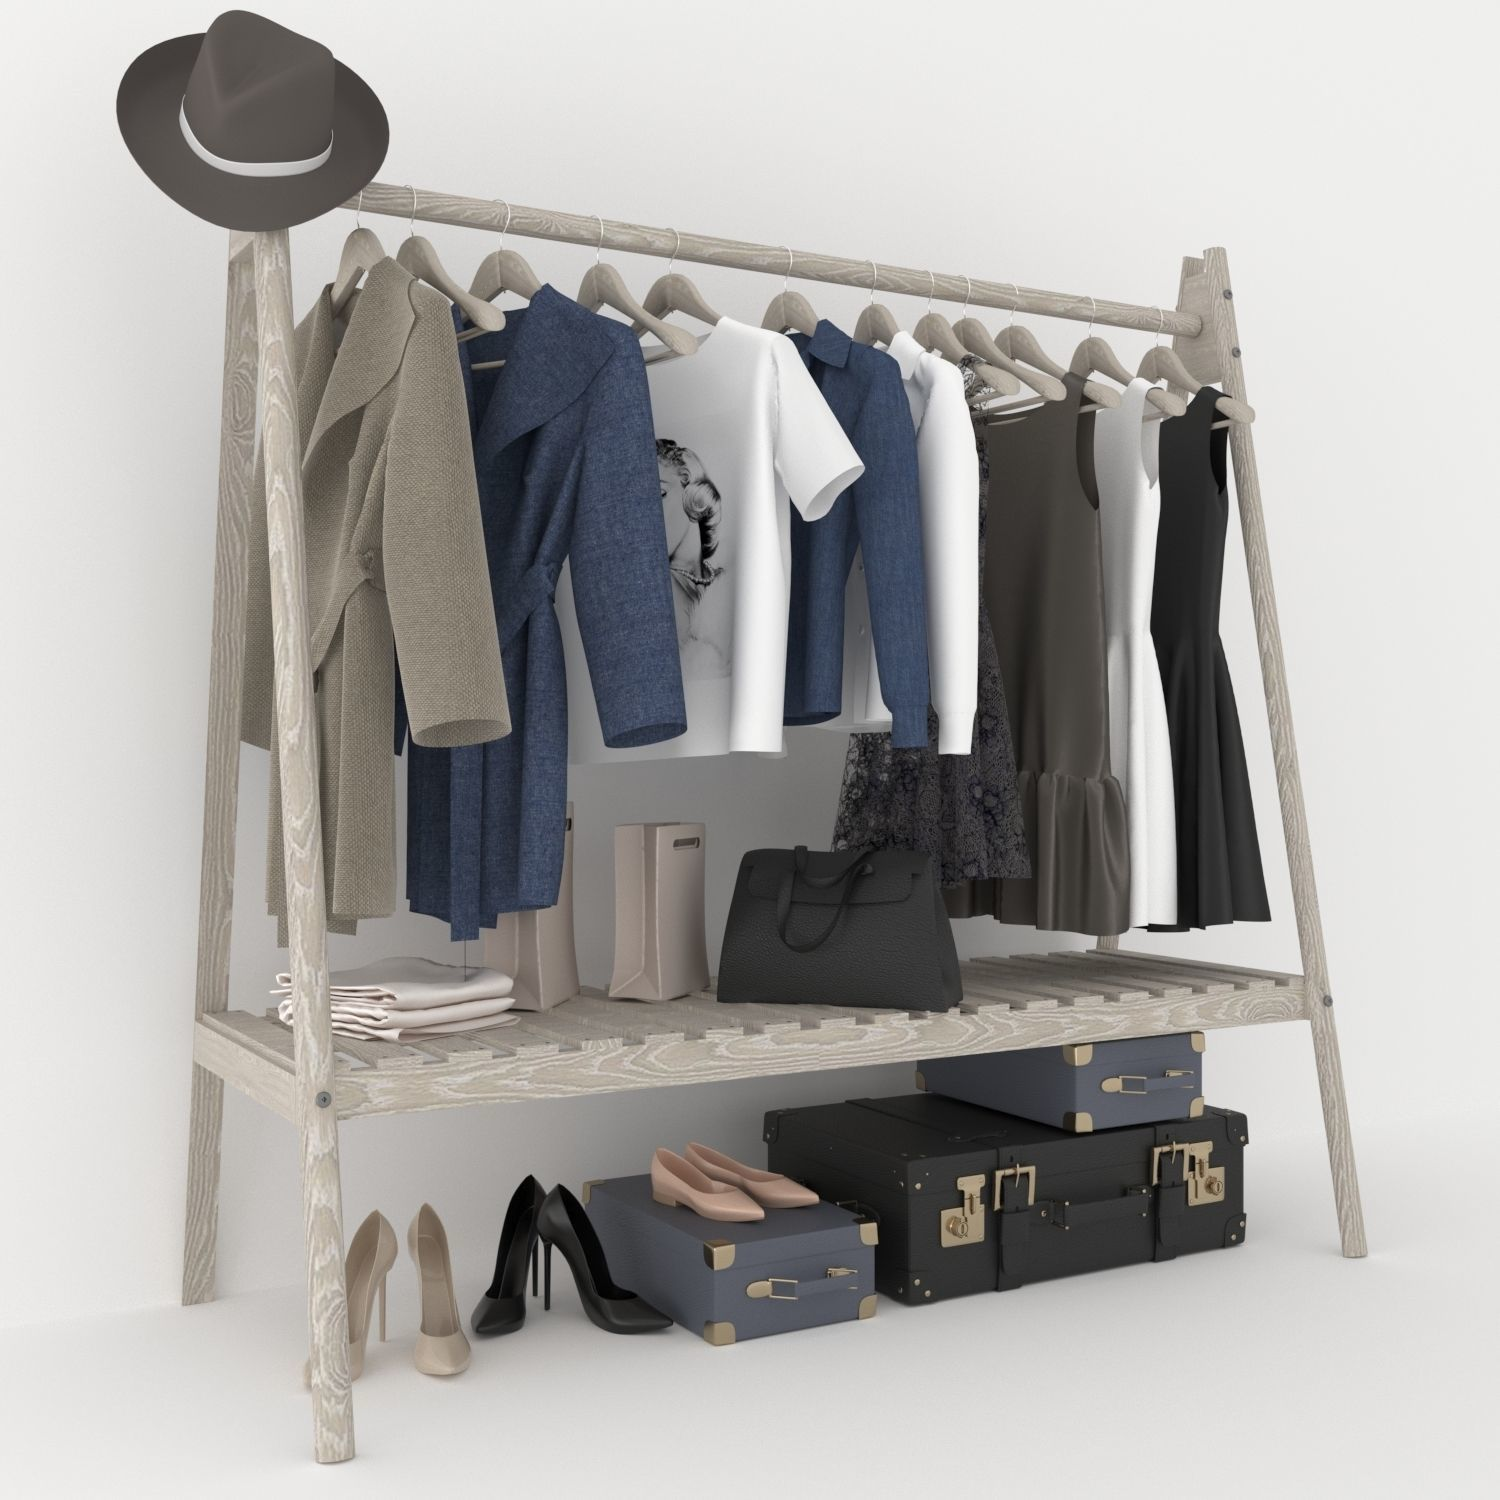 Clothing rack I